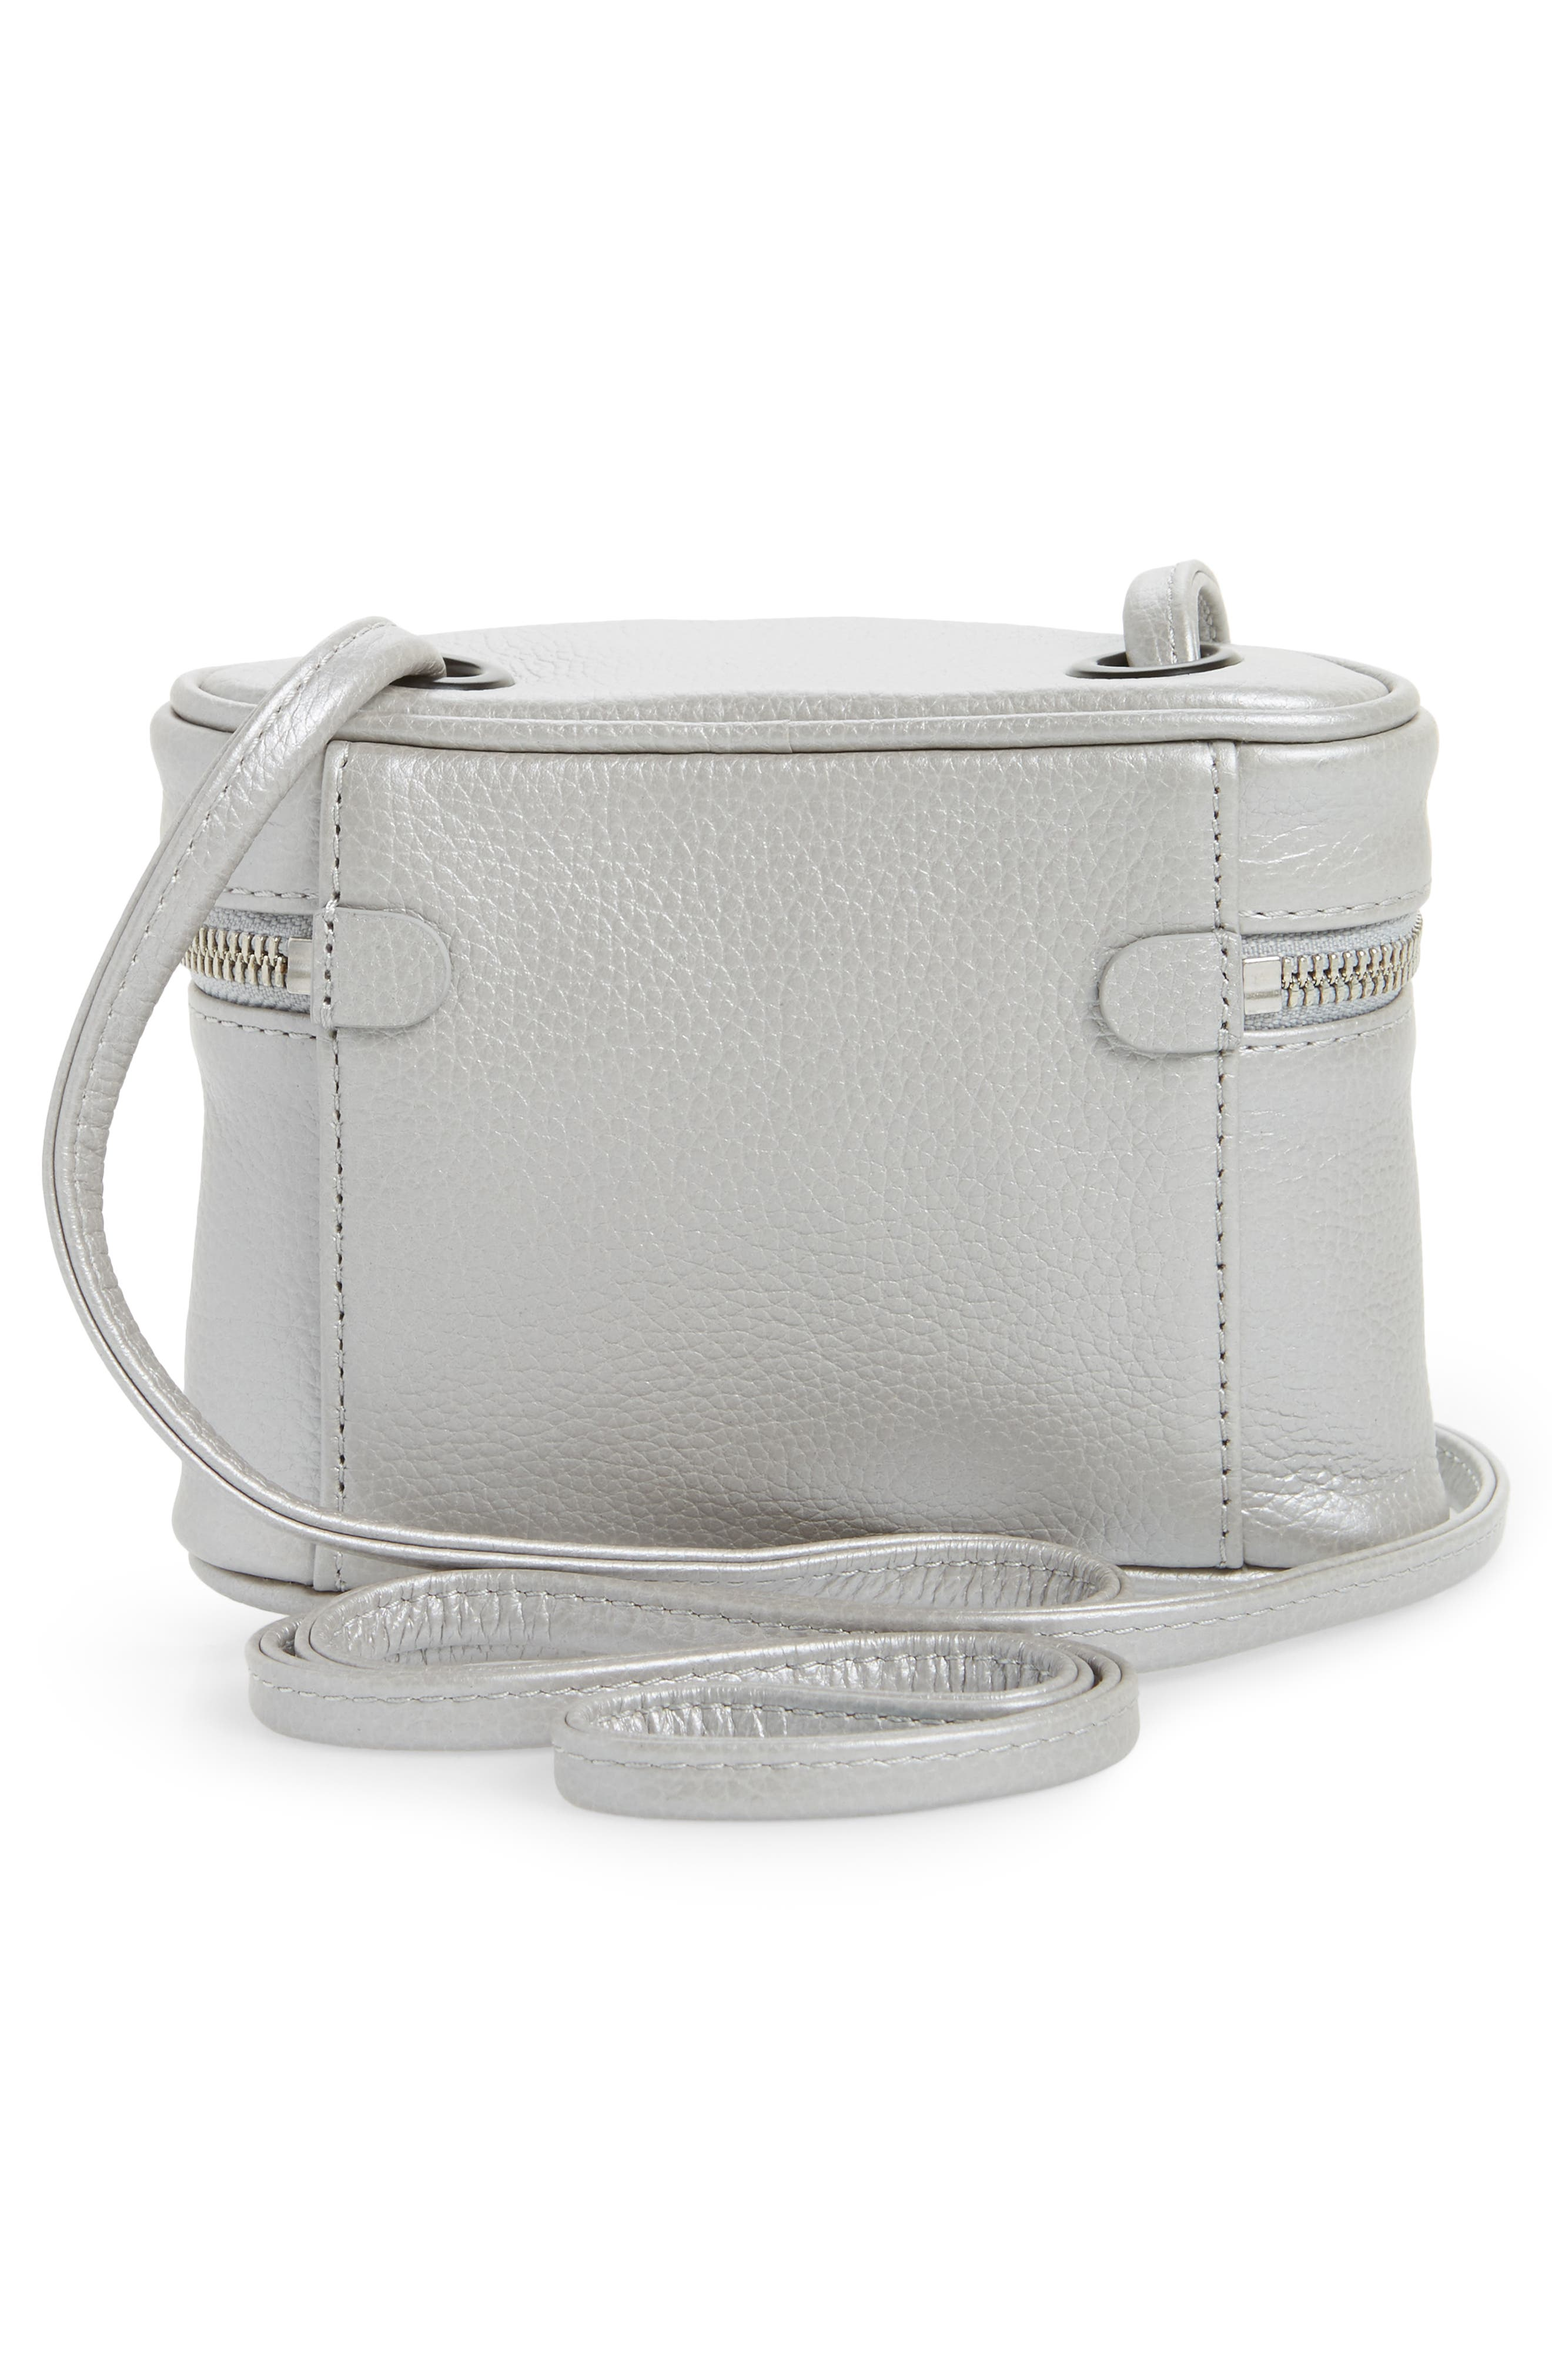 Greenwood Autumn Leather Crossbody Bag,                             Alternate thumbnail 3, color,